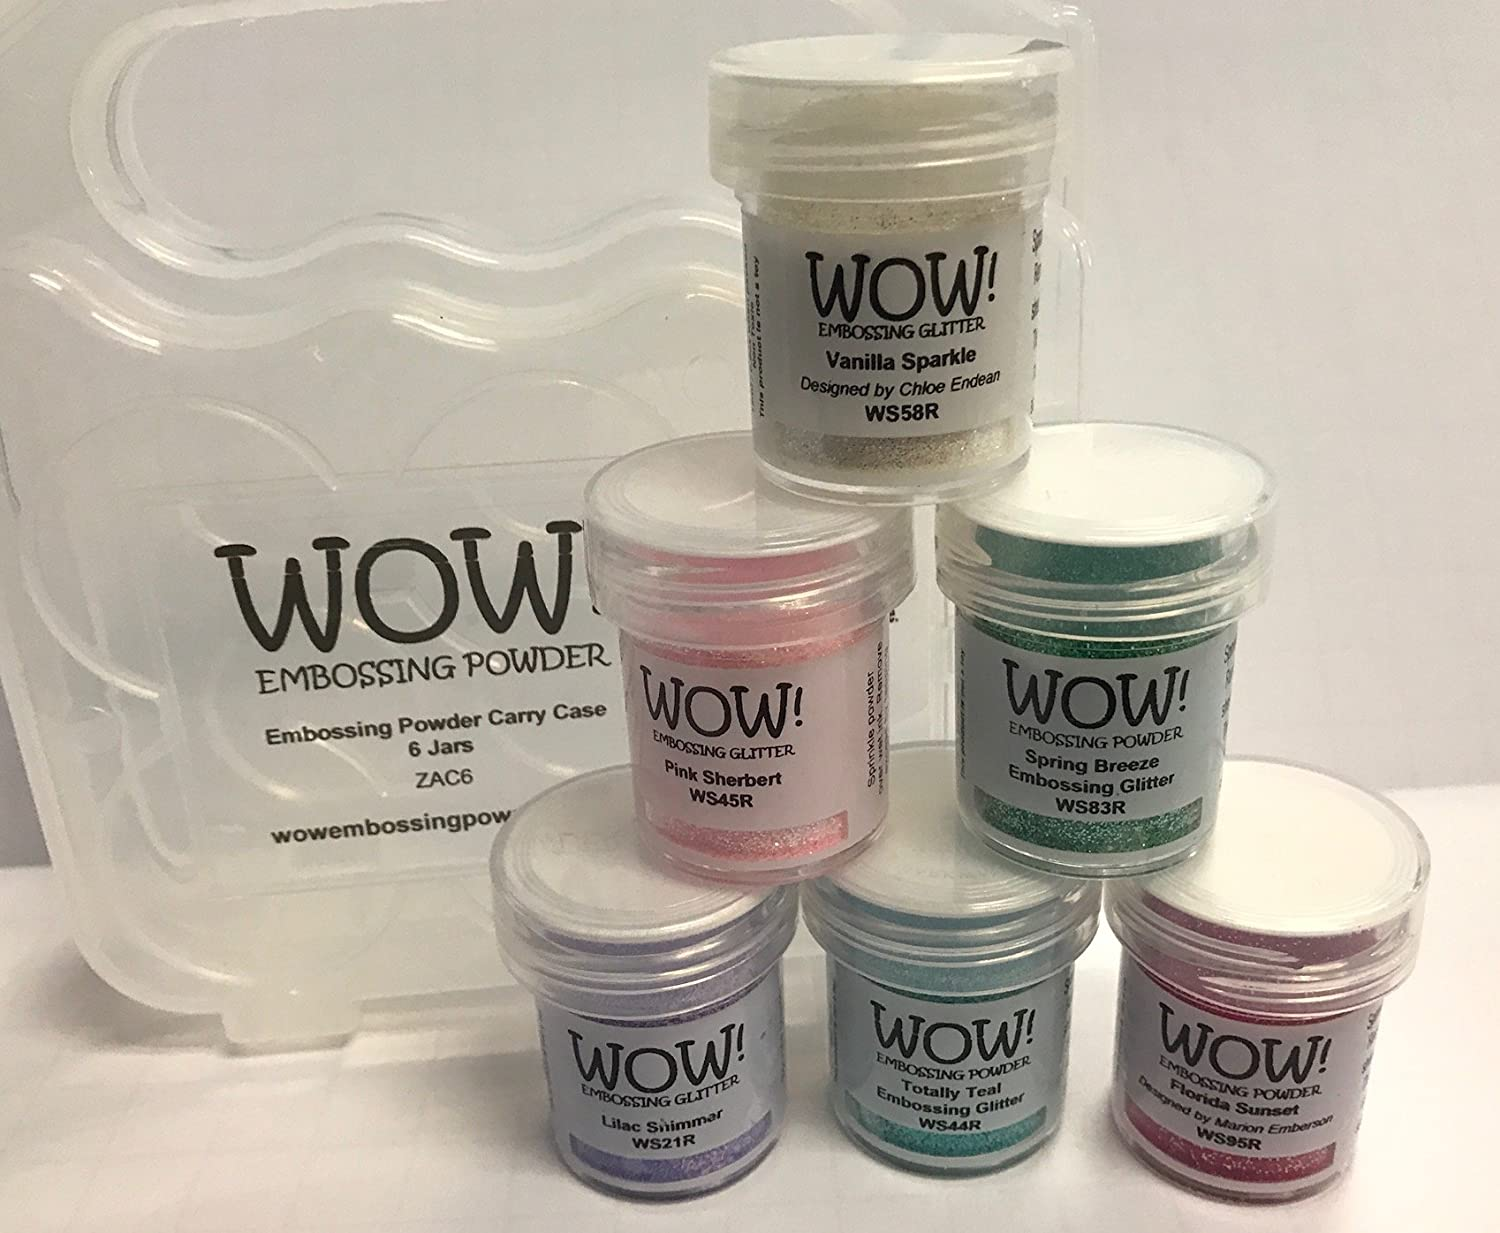 WOW! Embossing Powder and Glitter Sparkle in Pastel Colors 6 - Pack Kit and Clear Carrying Case - Bundle 7 Items WOW! USA Pastels ZAC6